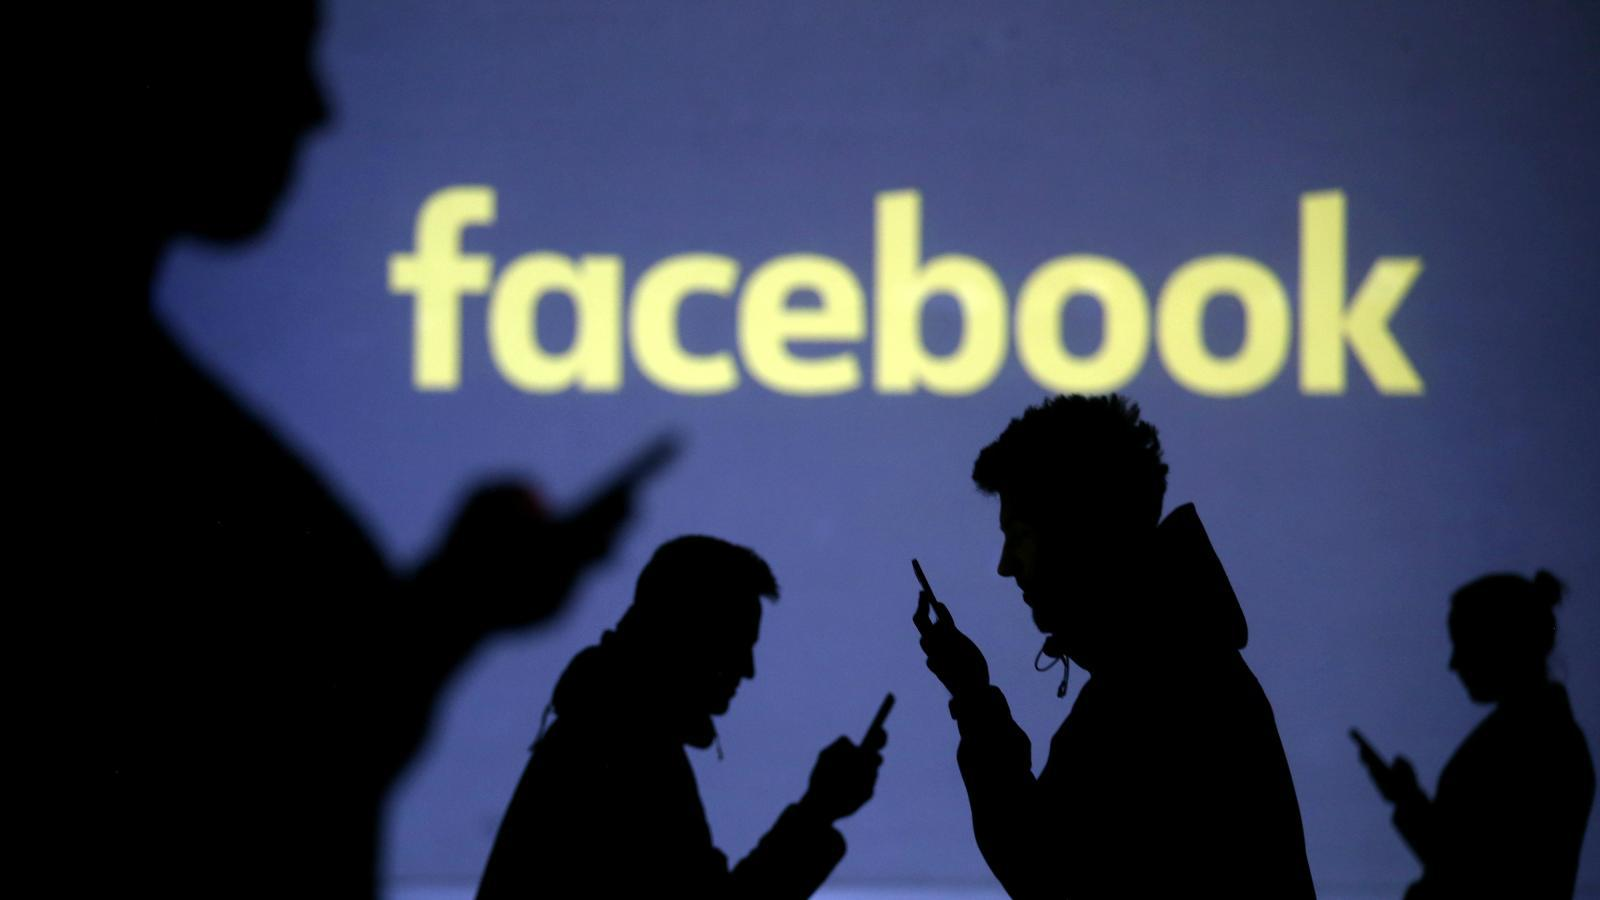 'Page Quality' Update for Facebook to Stop the Misuse